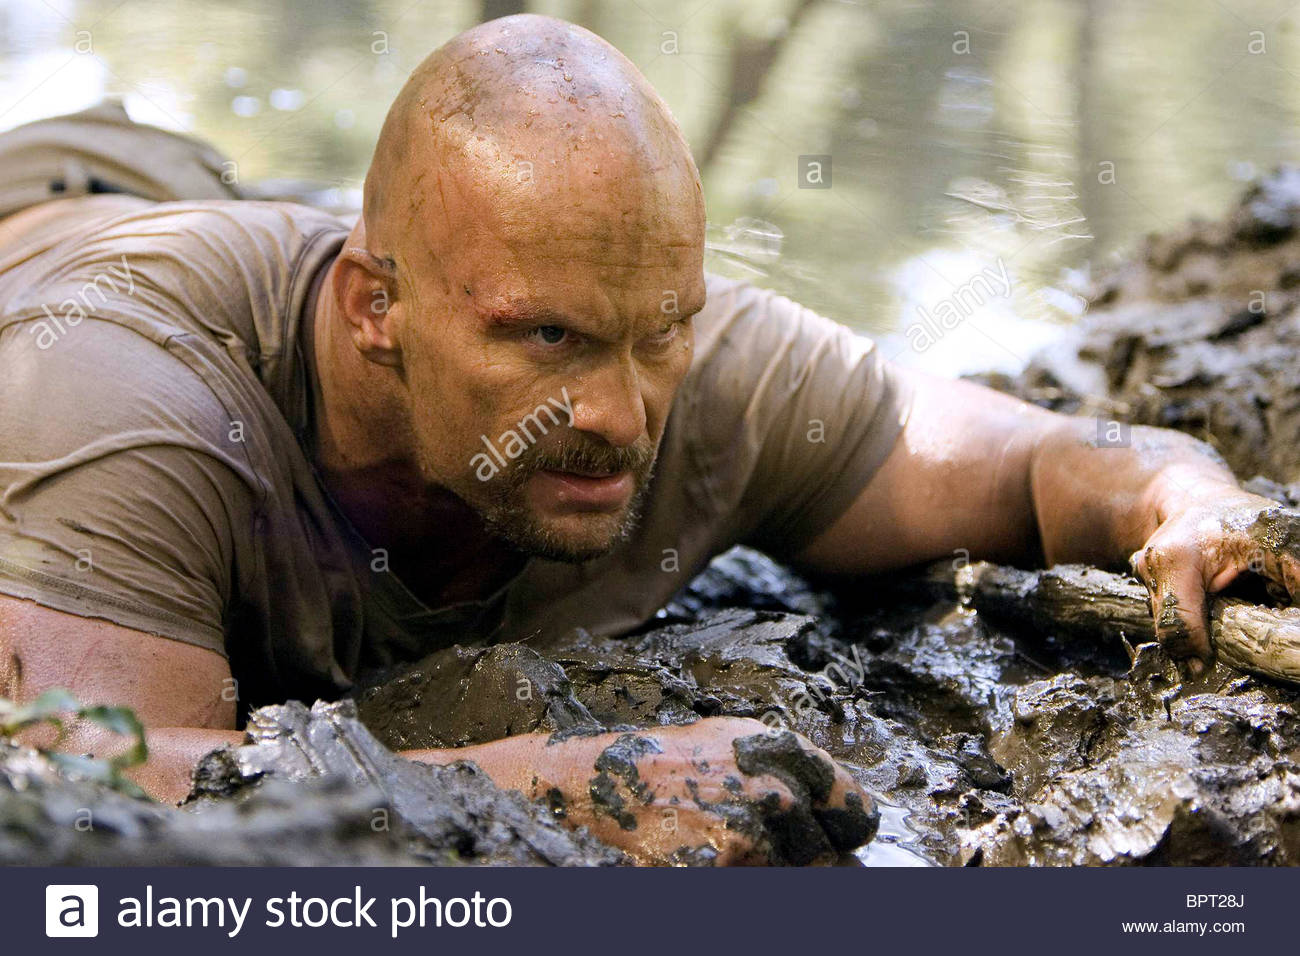 STEVE AUSTIN THE CONDEMNED (2007) - Stock Image